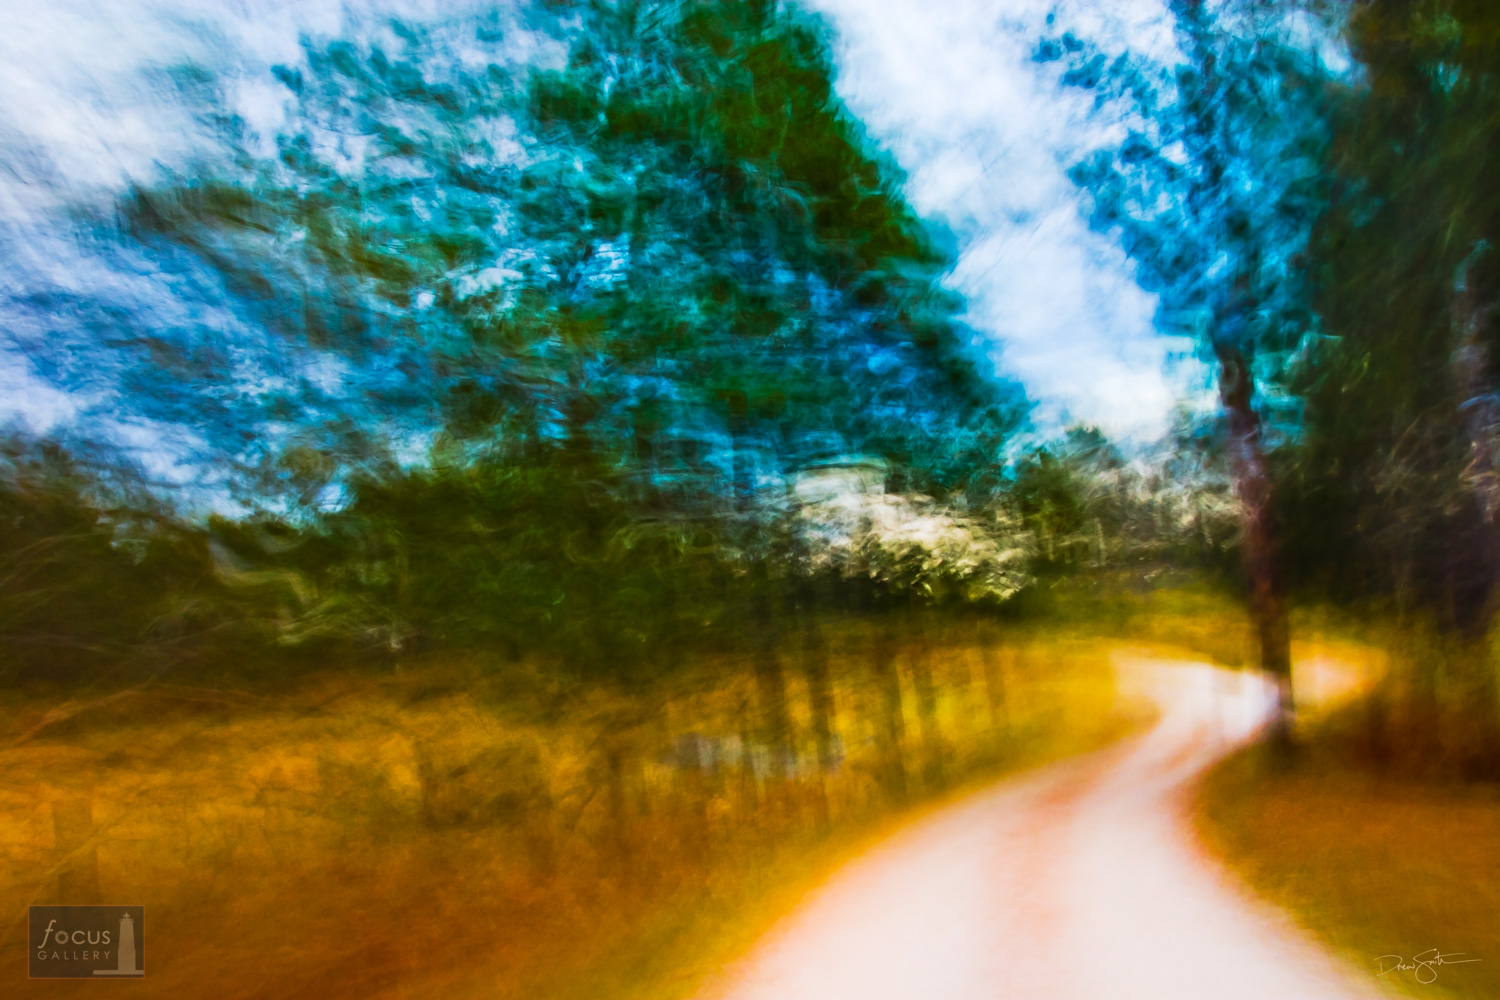 Impressionistic image of a curvy road through trees in the fall.